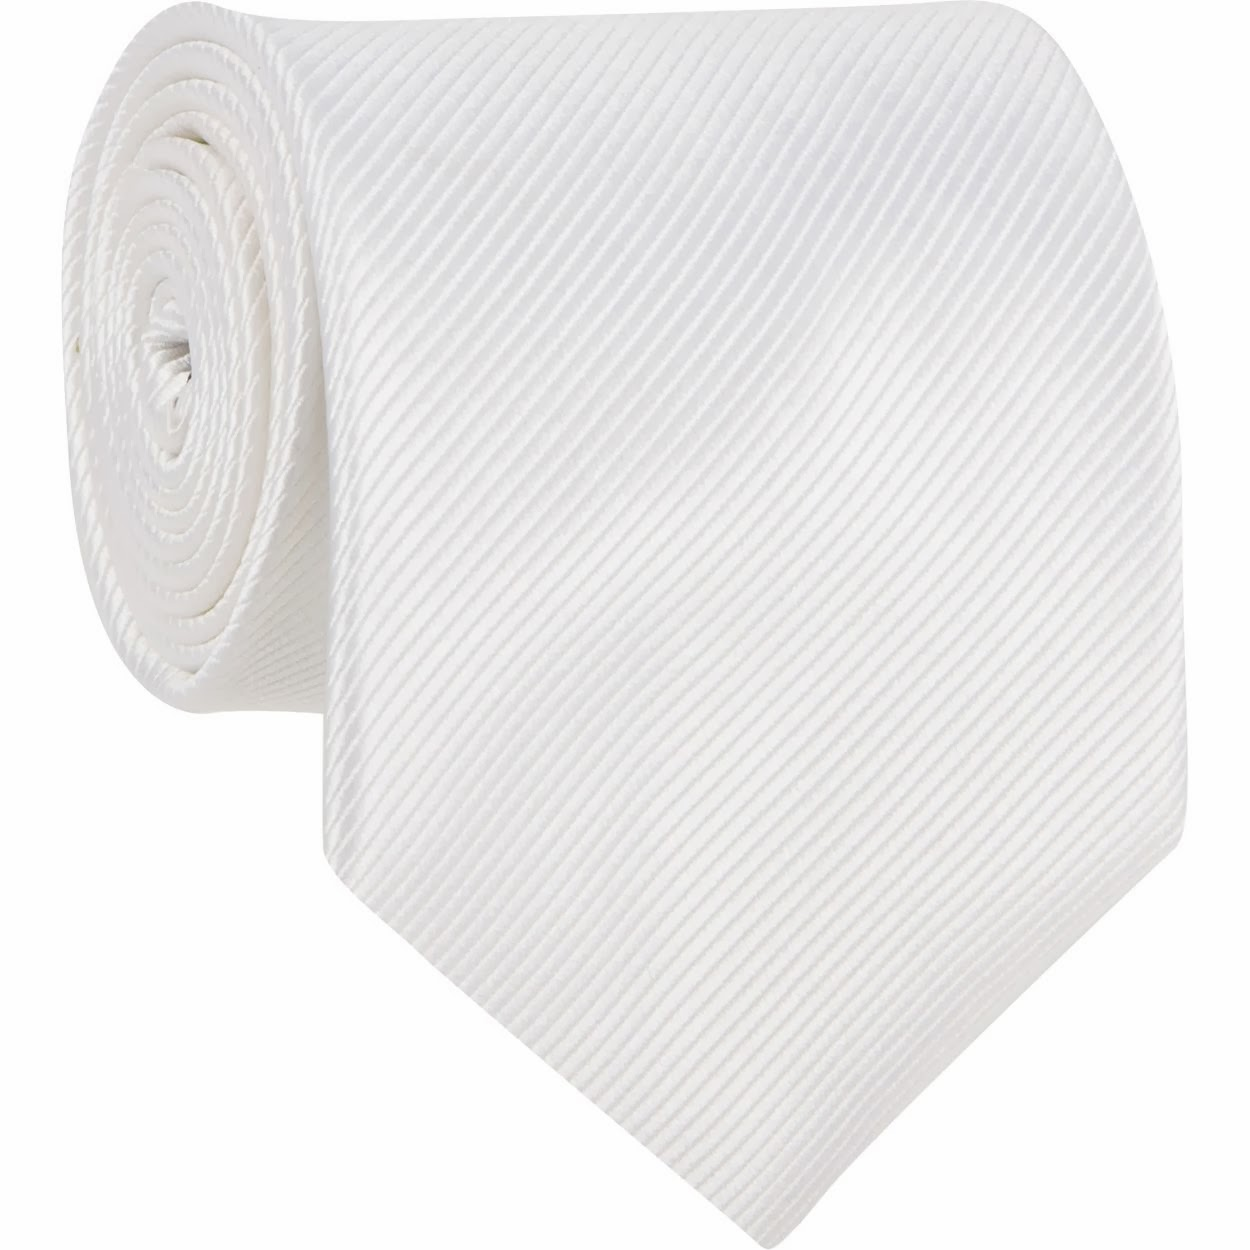 http://www.buyyourties.com/boys-store-c-924.html